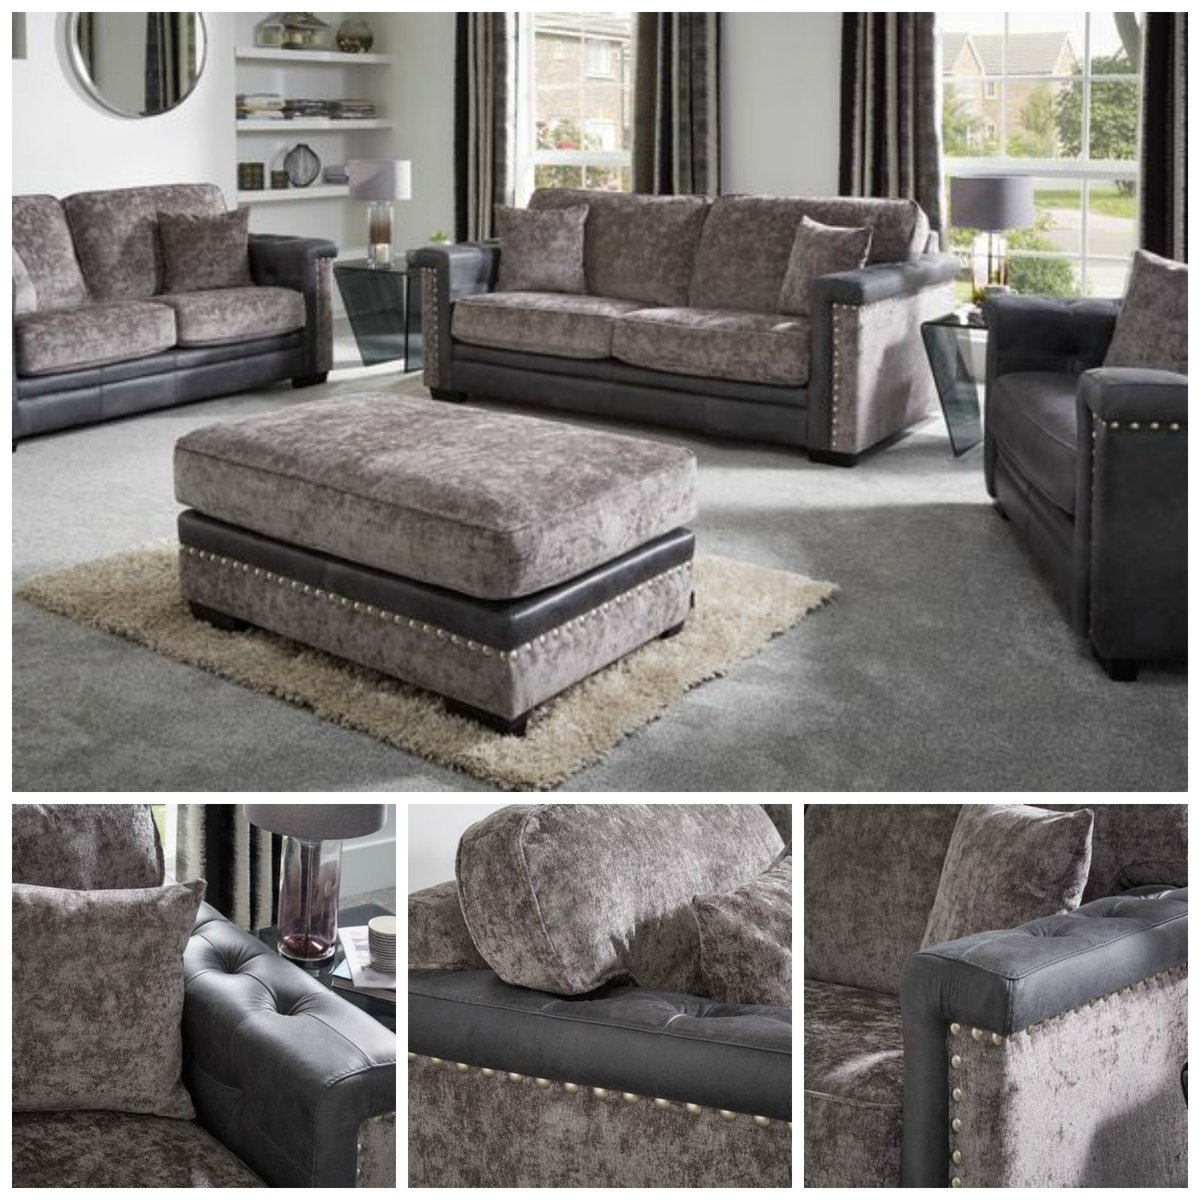 Scs Sofas On Twitter Give Your Living Room A Stylish New Look With The Handcrafted Luxury Sisi Italia Antonio Sofa Collection Https T Co Qcp9gu8xlj